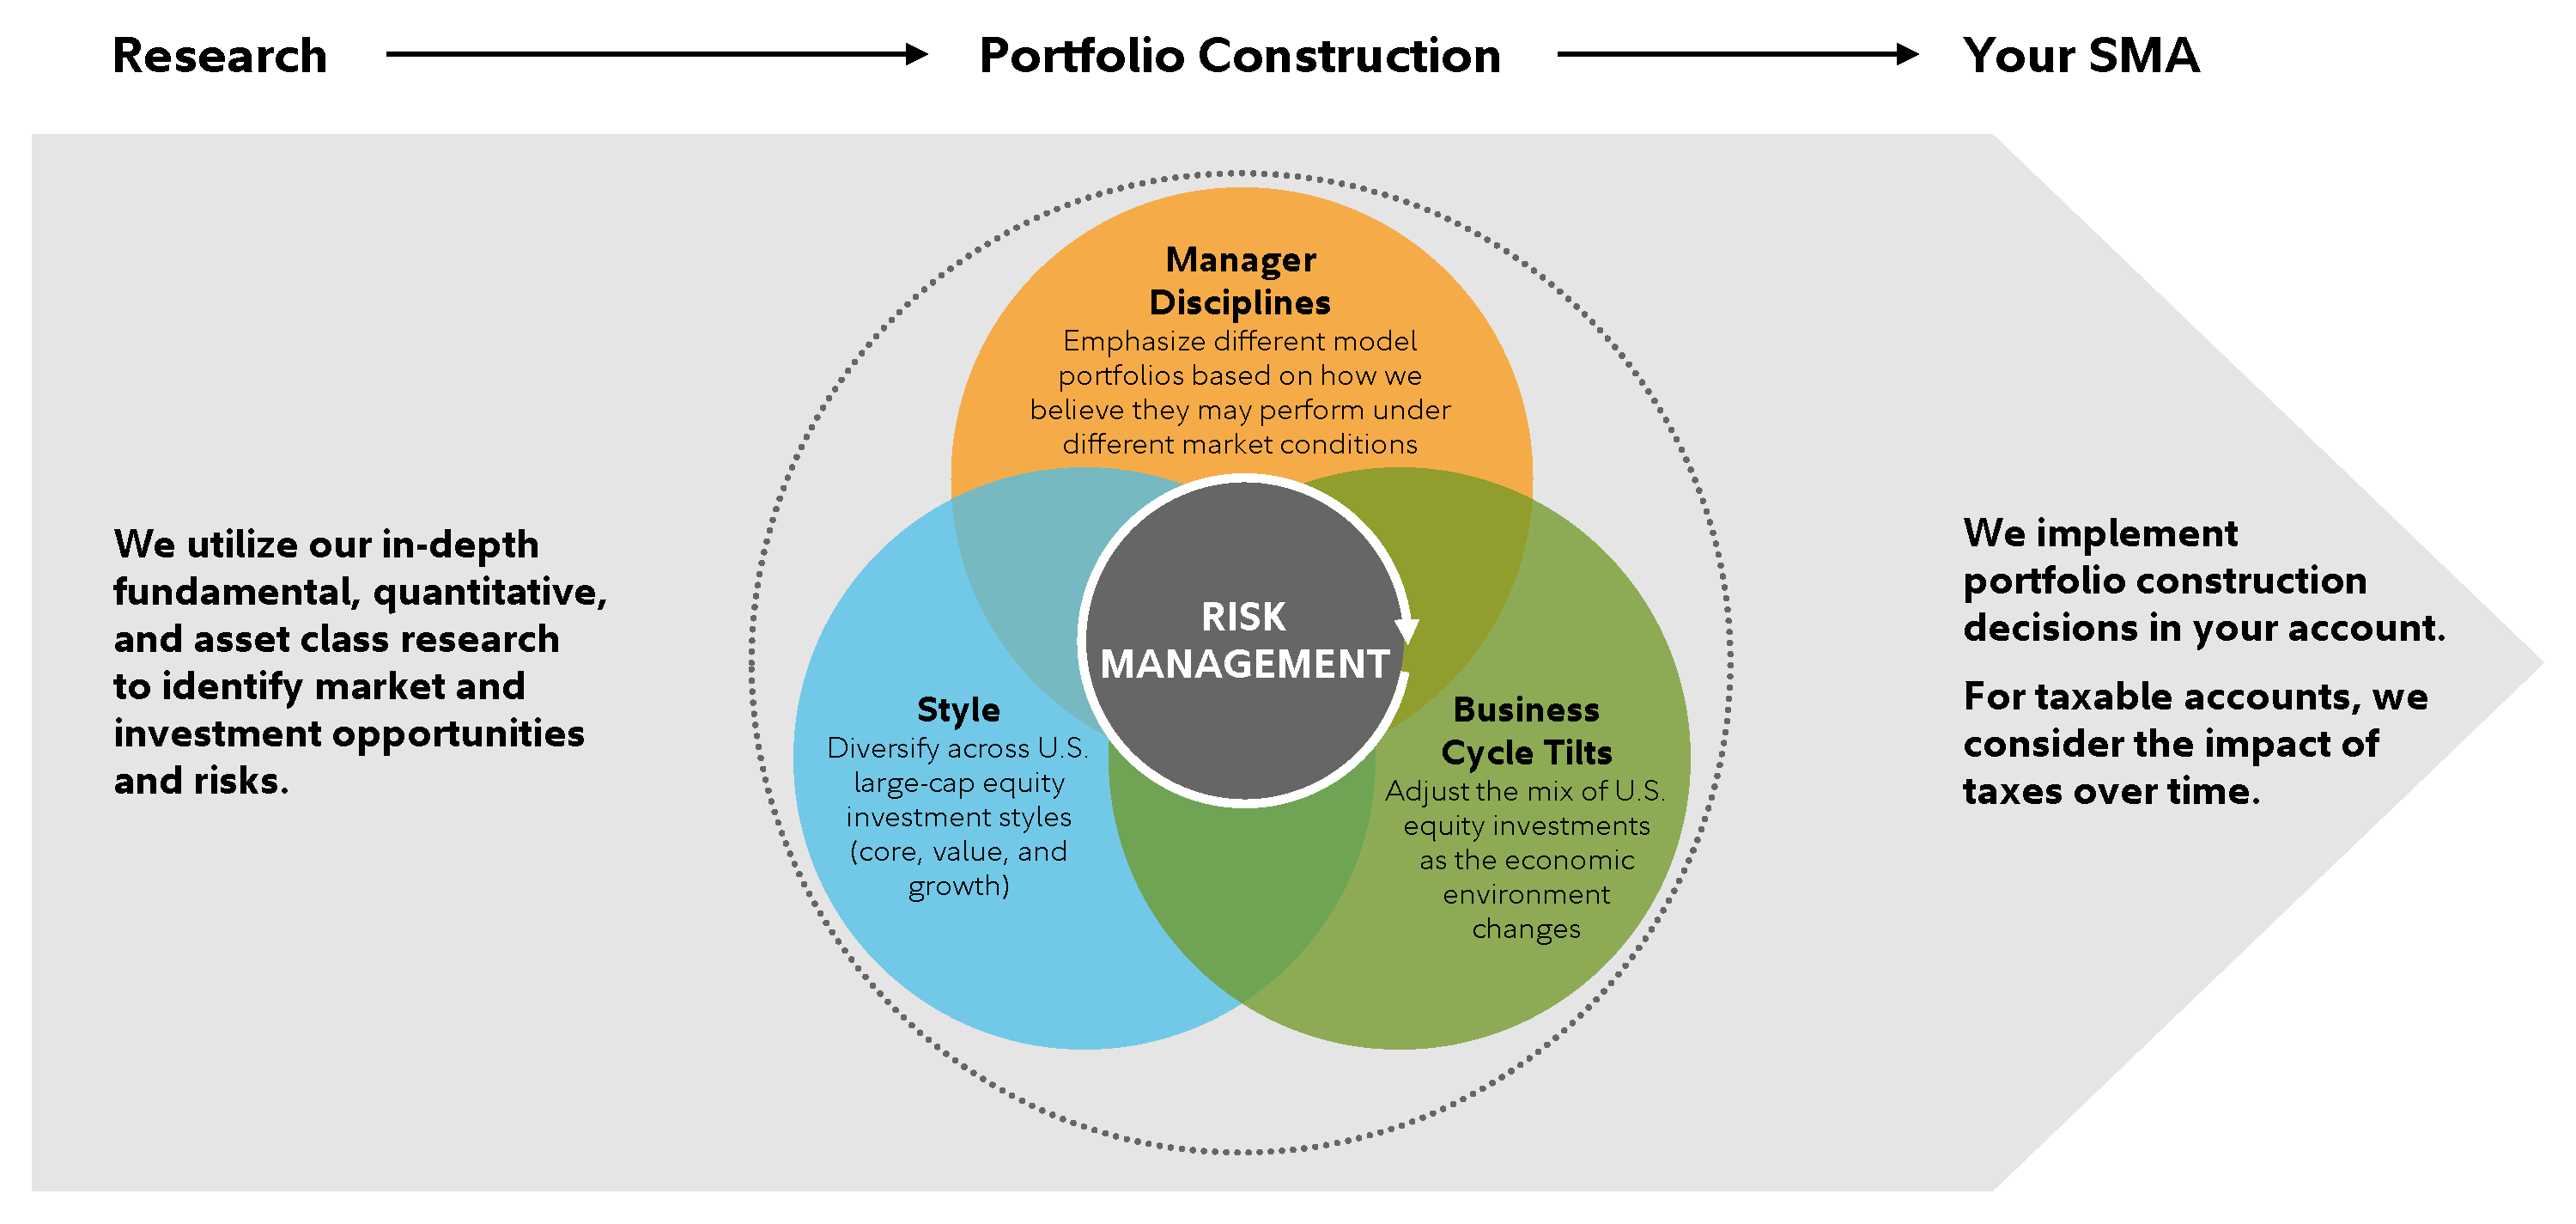 Graphic helps explain the three steps of our investment process — Research, Portfolio Construction, and Your SMA. a. In conducting research, we utilize in-depth fundamental, qualitative, and asset class research to identify market opportunities and risks. b. During portfolio construction, we emphasize different model portfolios based on how we believe they may perform under different market conditions, diversify across different U.S. large-cap equity styles,